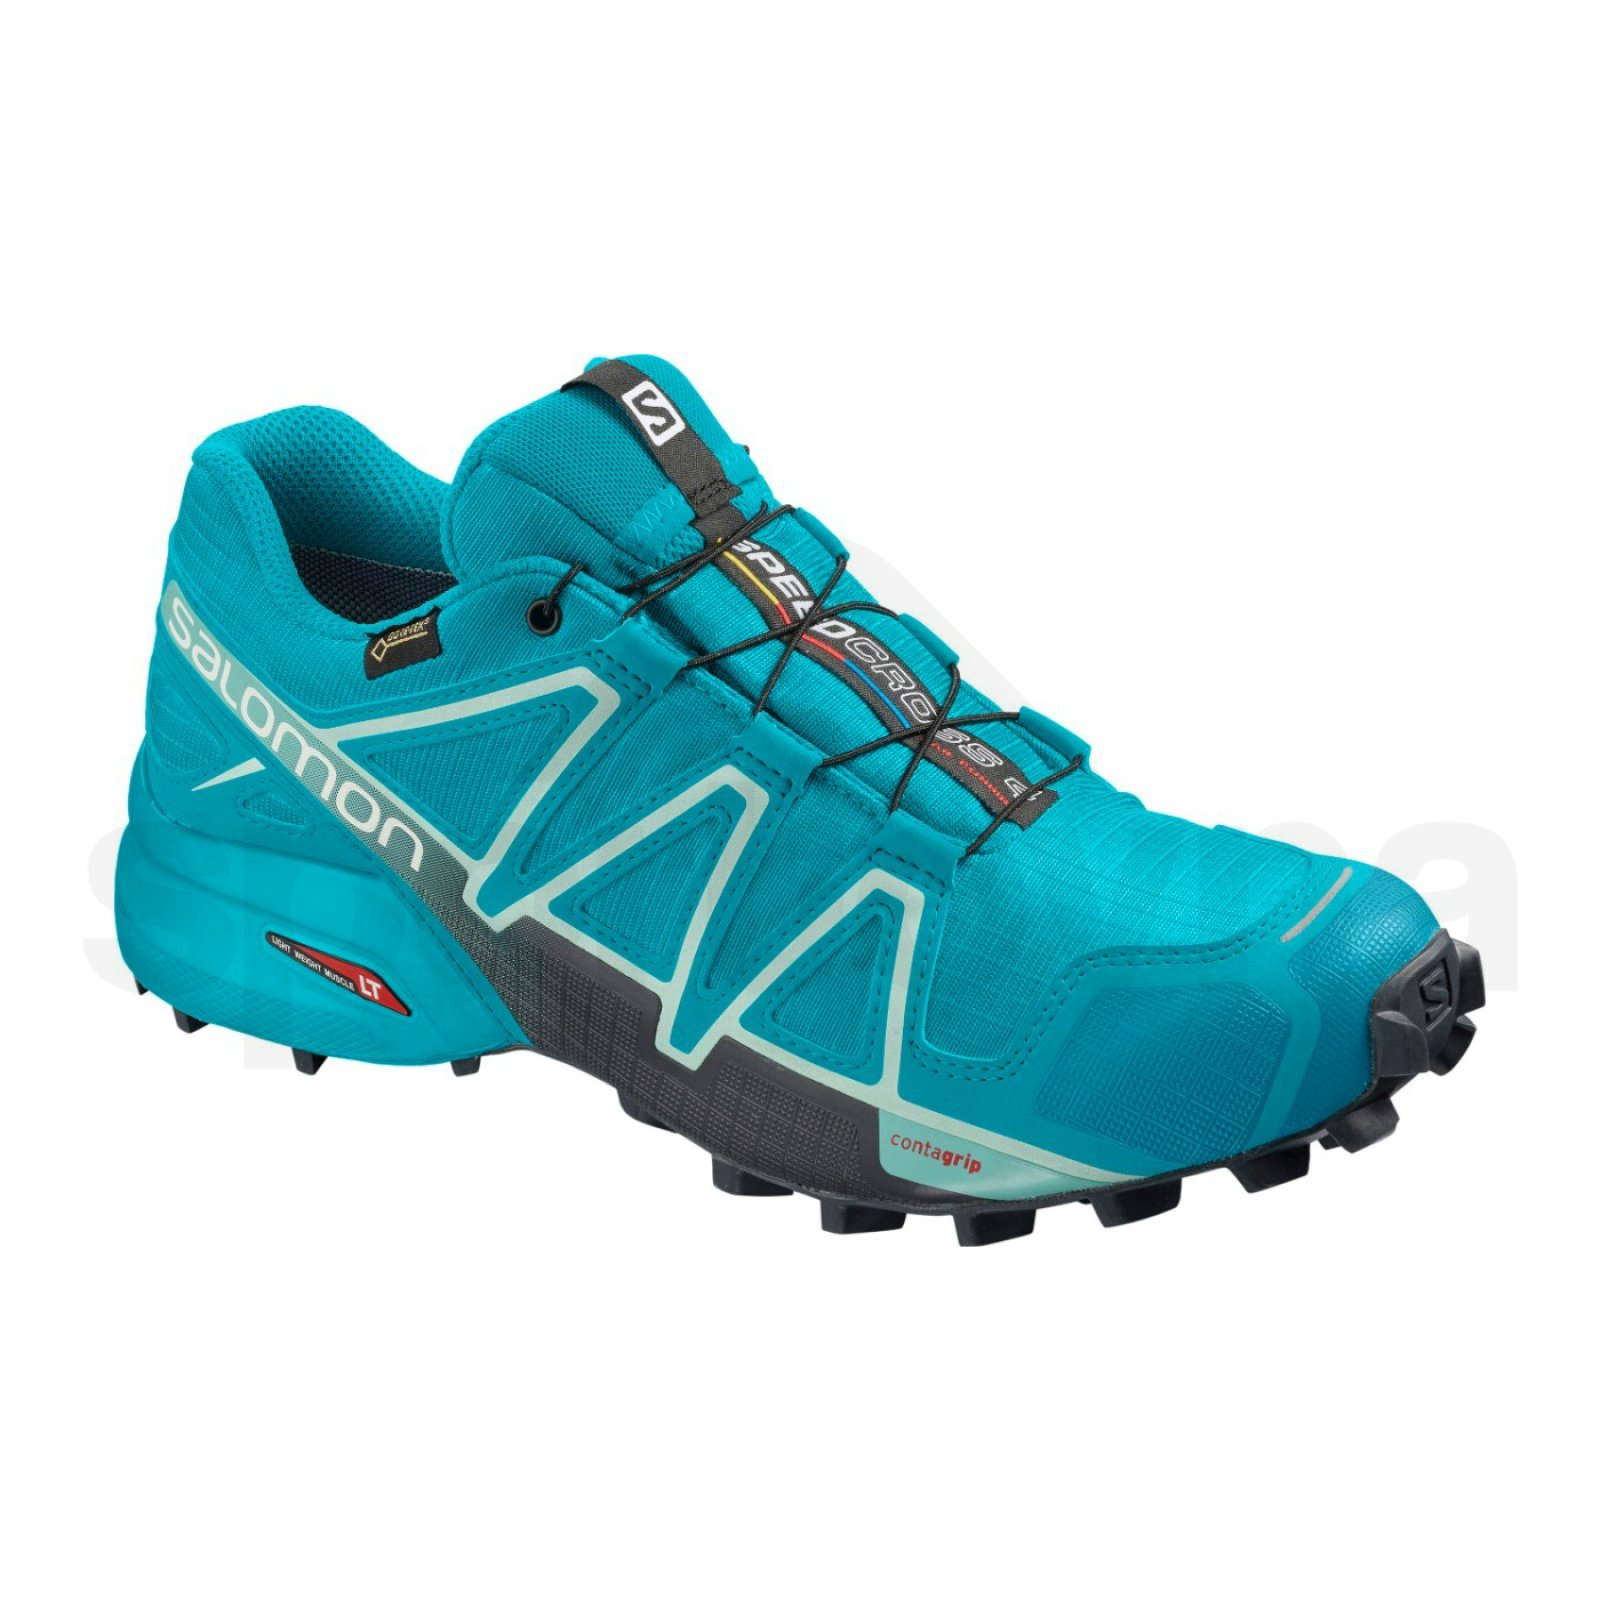 salomon-speedcross-4-gtx-w-blue-bird-l40660600_w1600_h1600